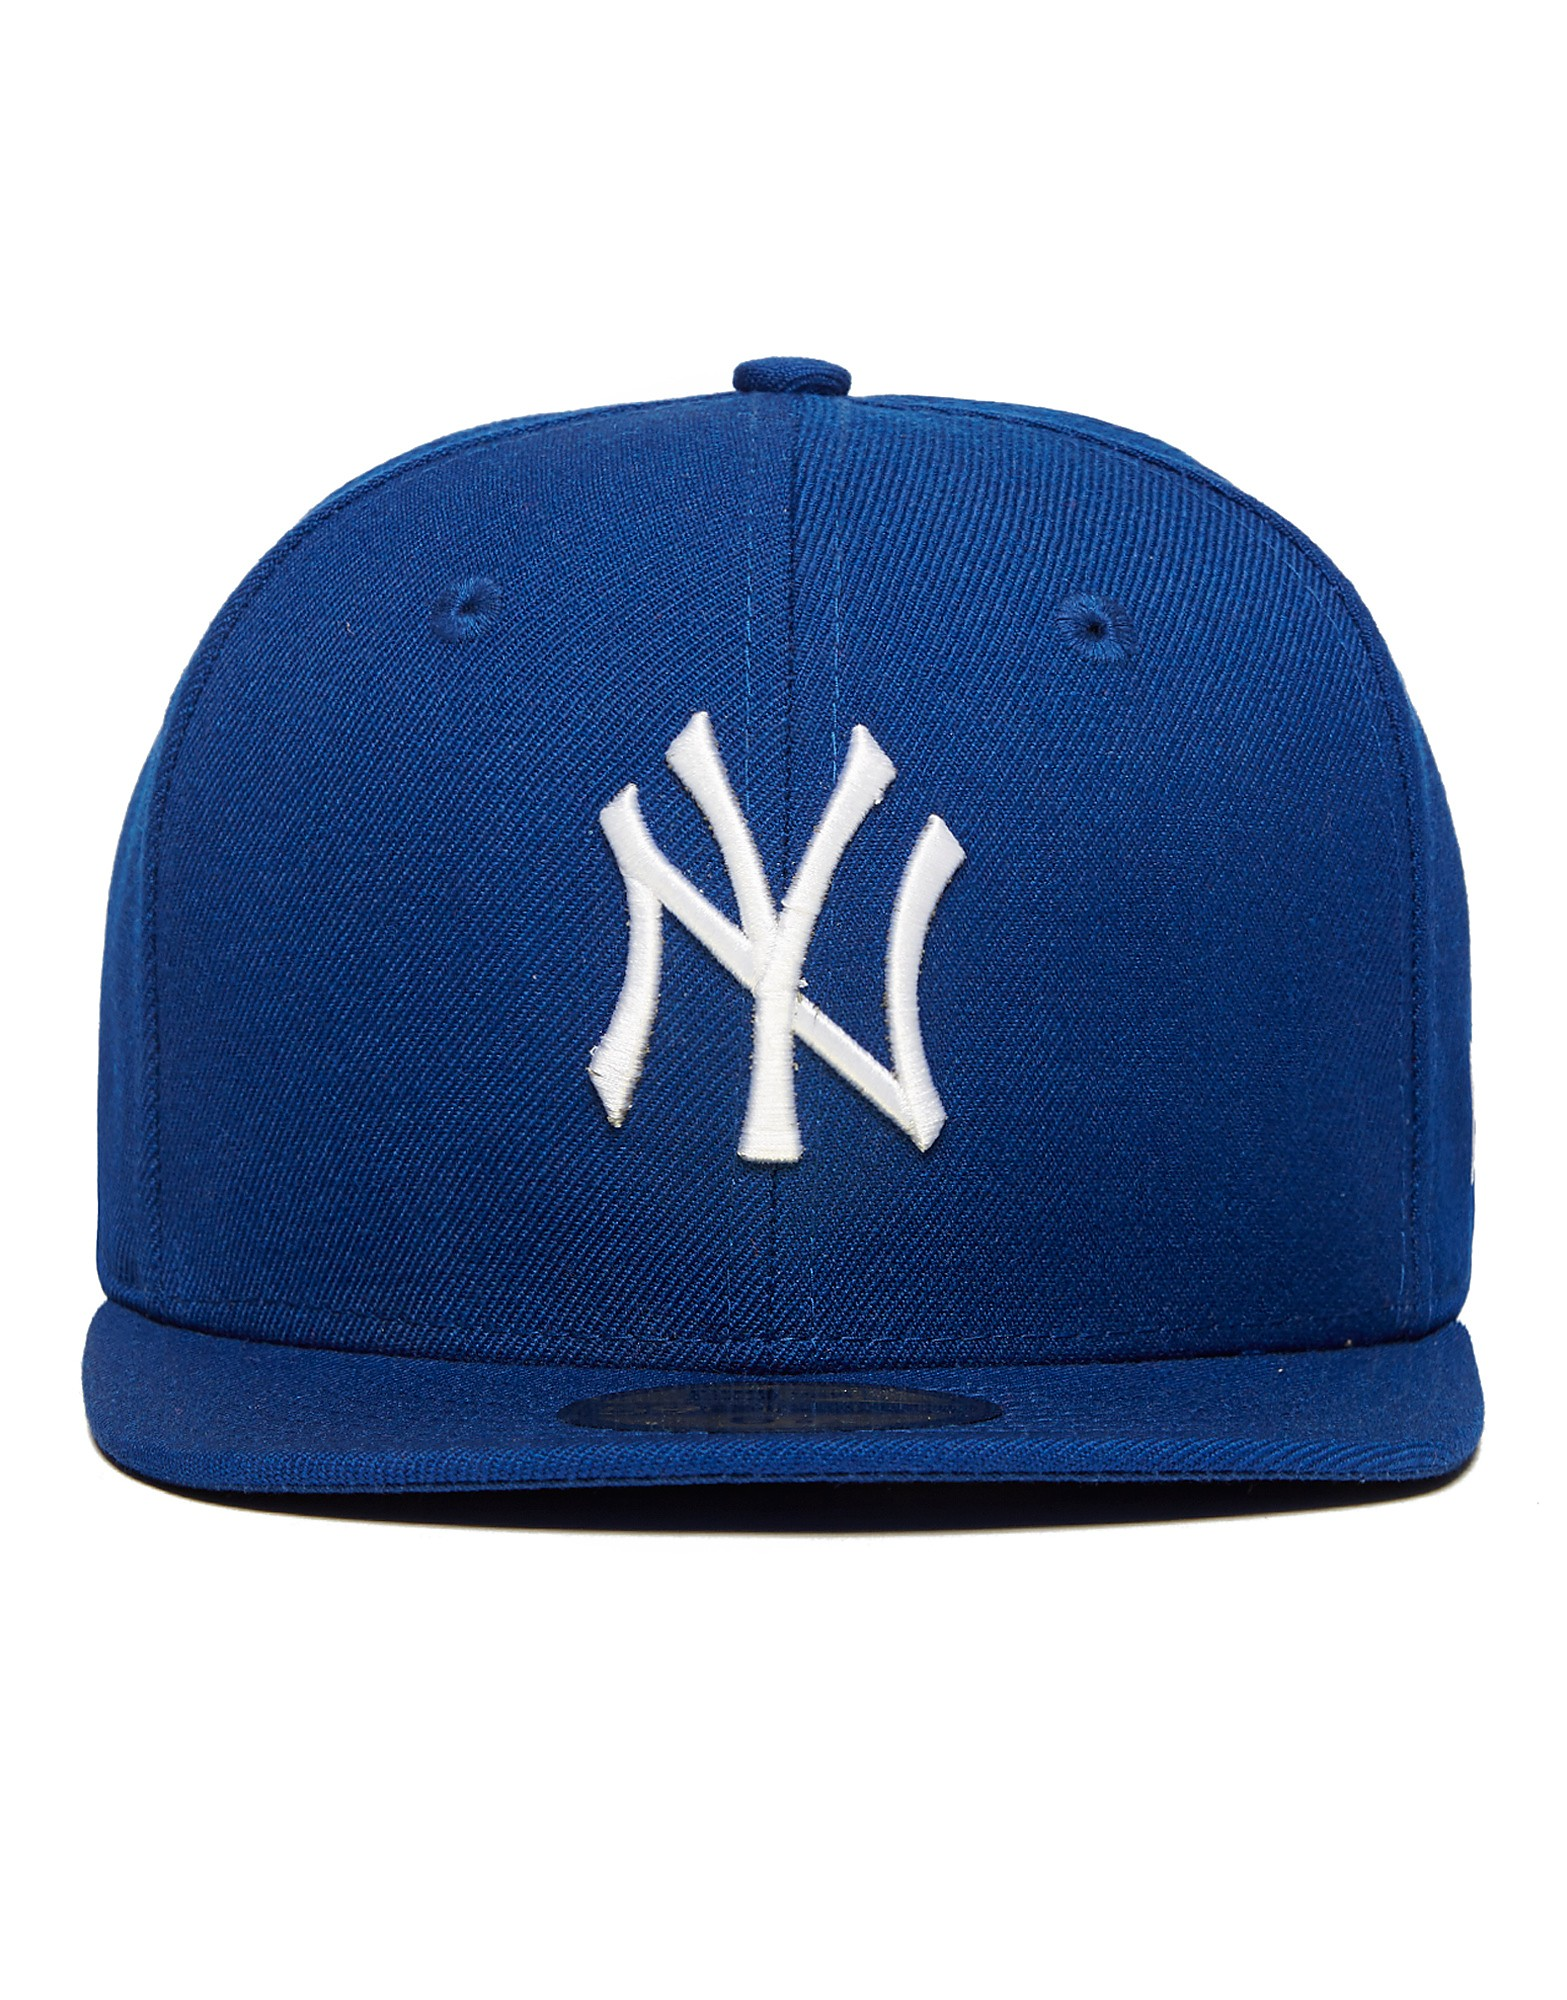 New Era Casquette ajustée New York Yankees 59FIFTY MLB